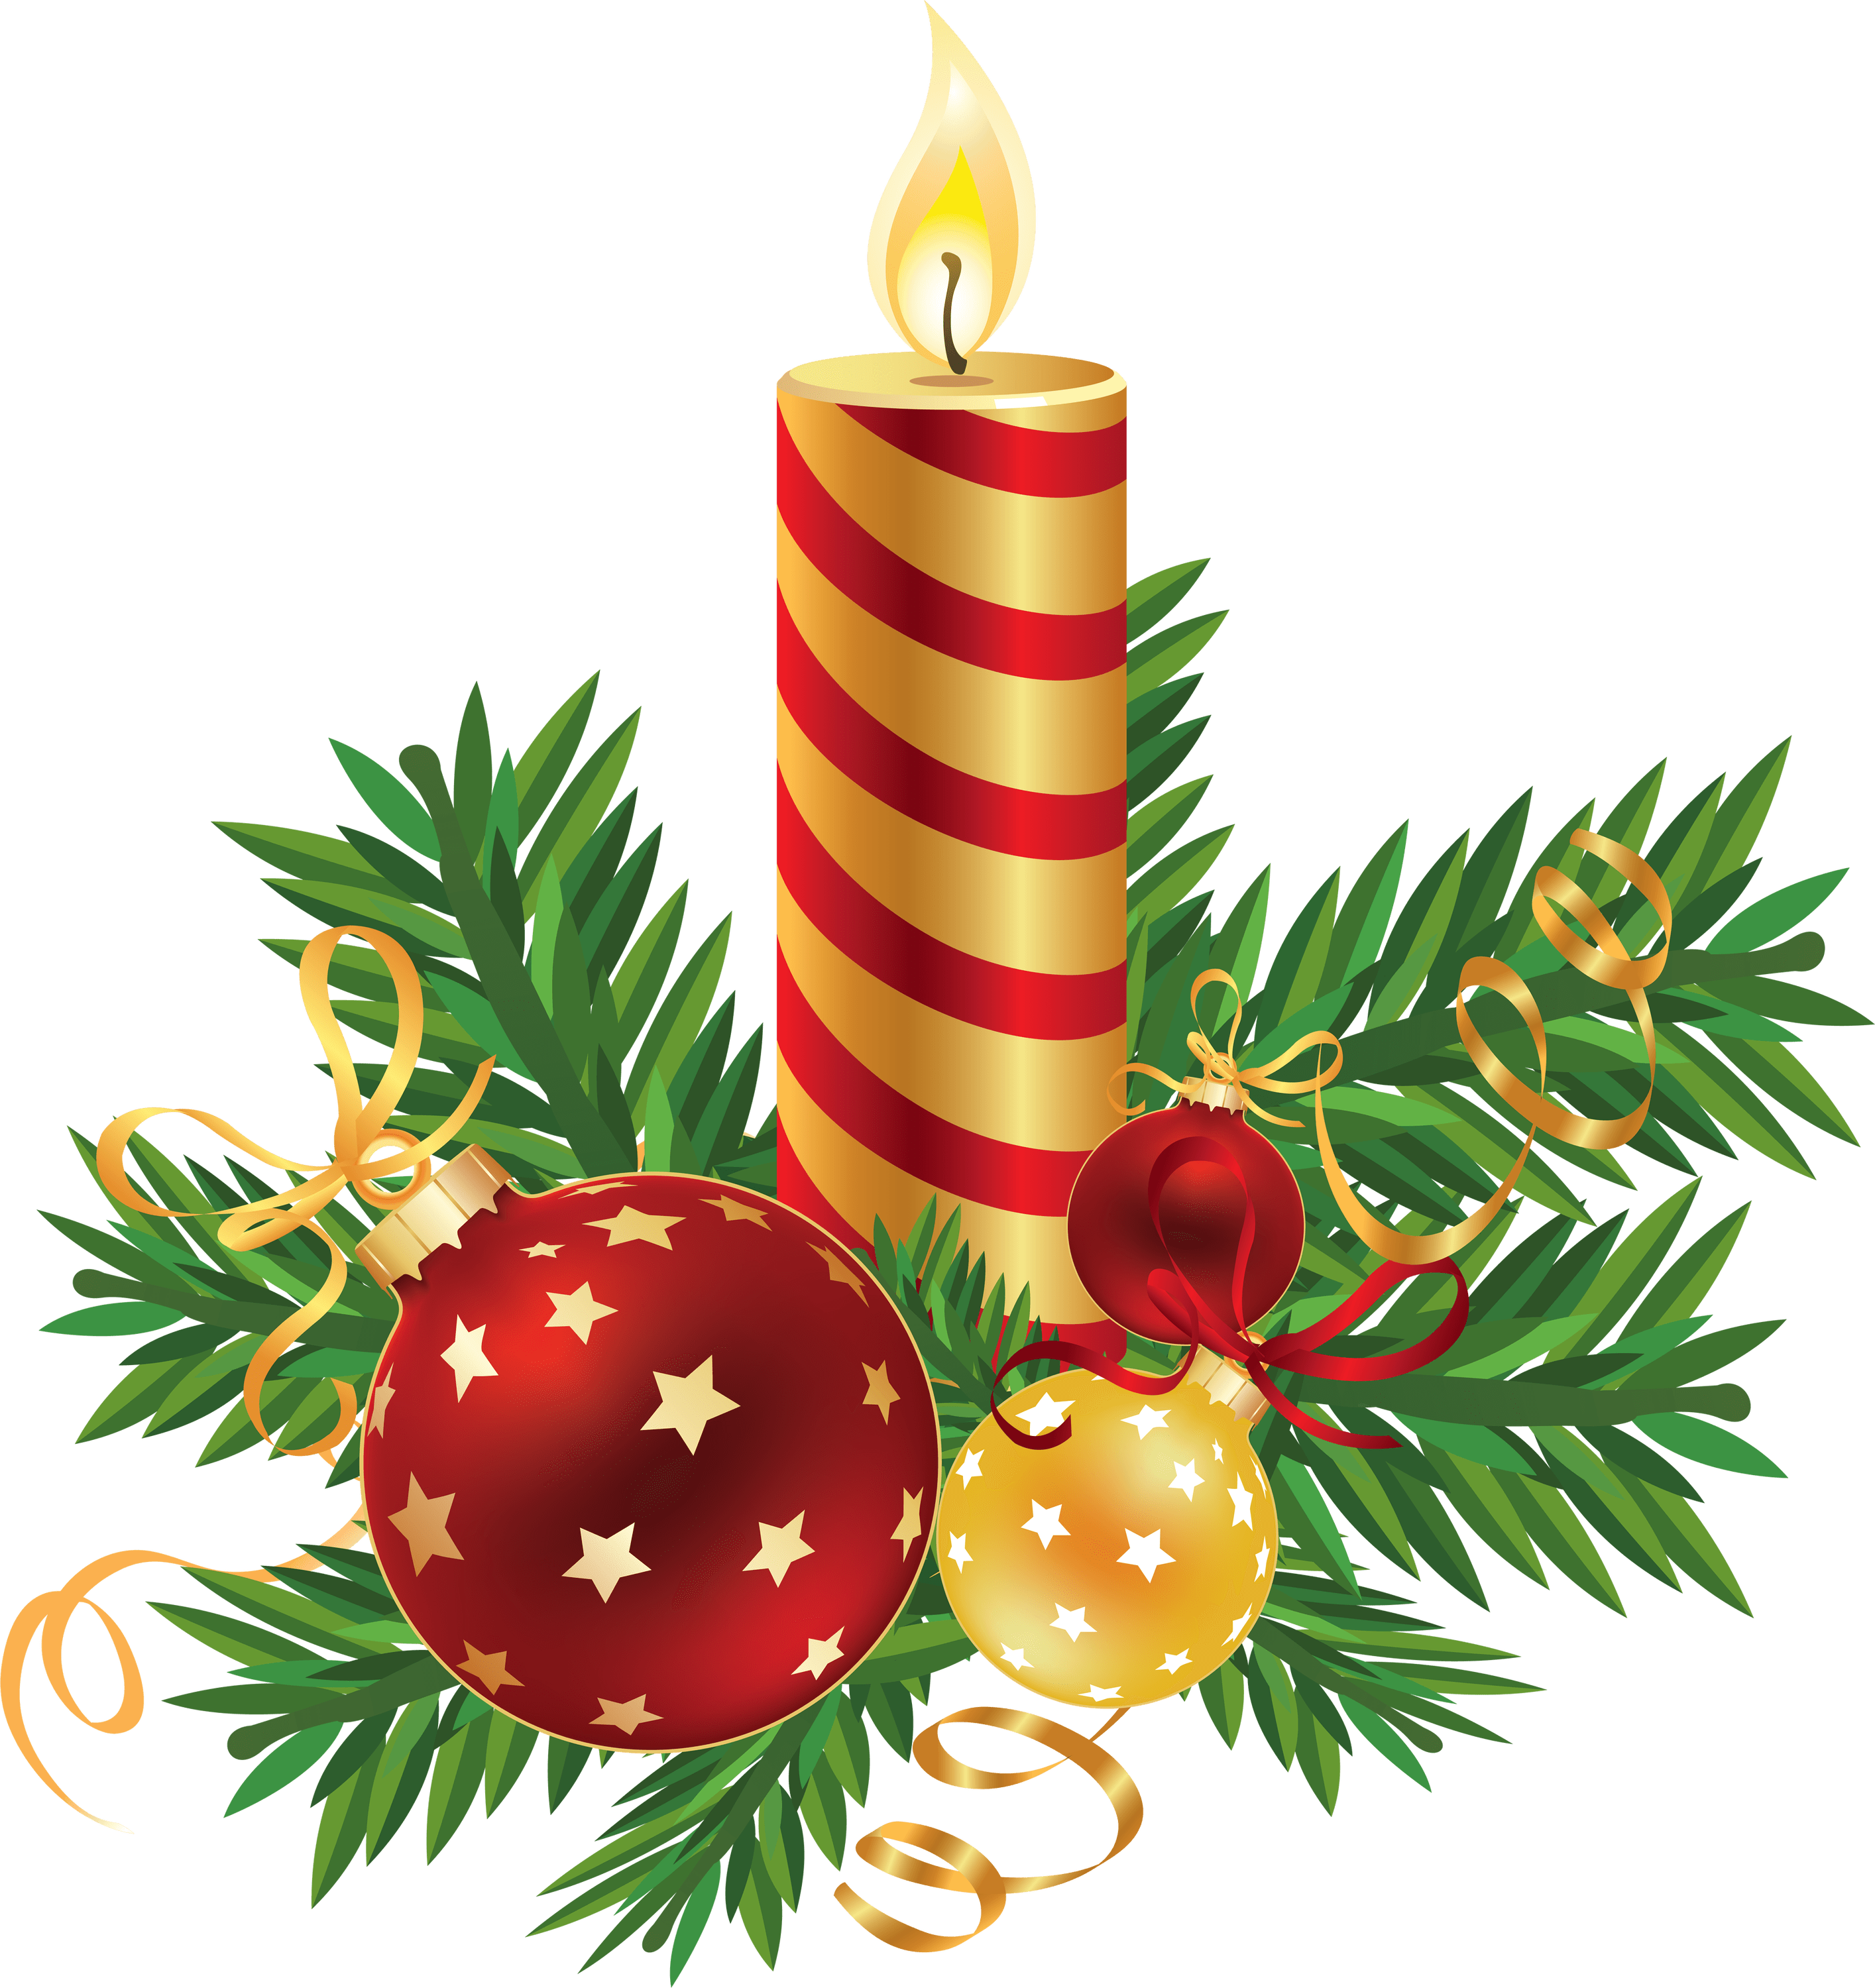 Candle christma red transparent png stickpng for Weihnachtskugeln transparent